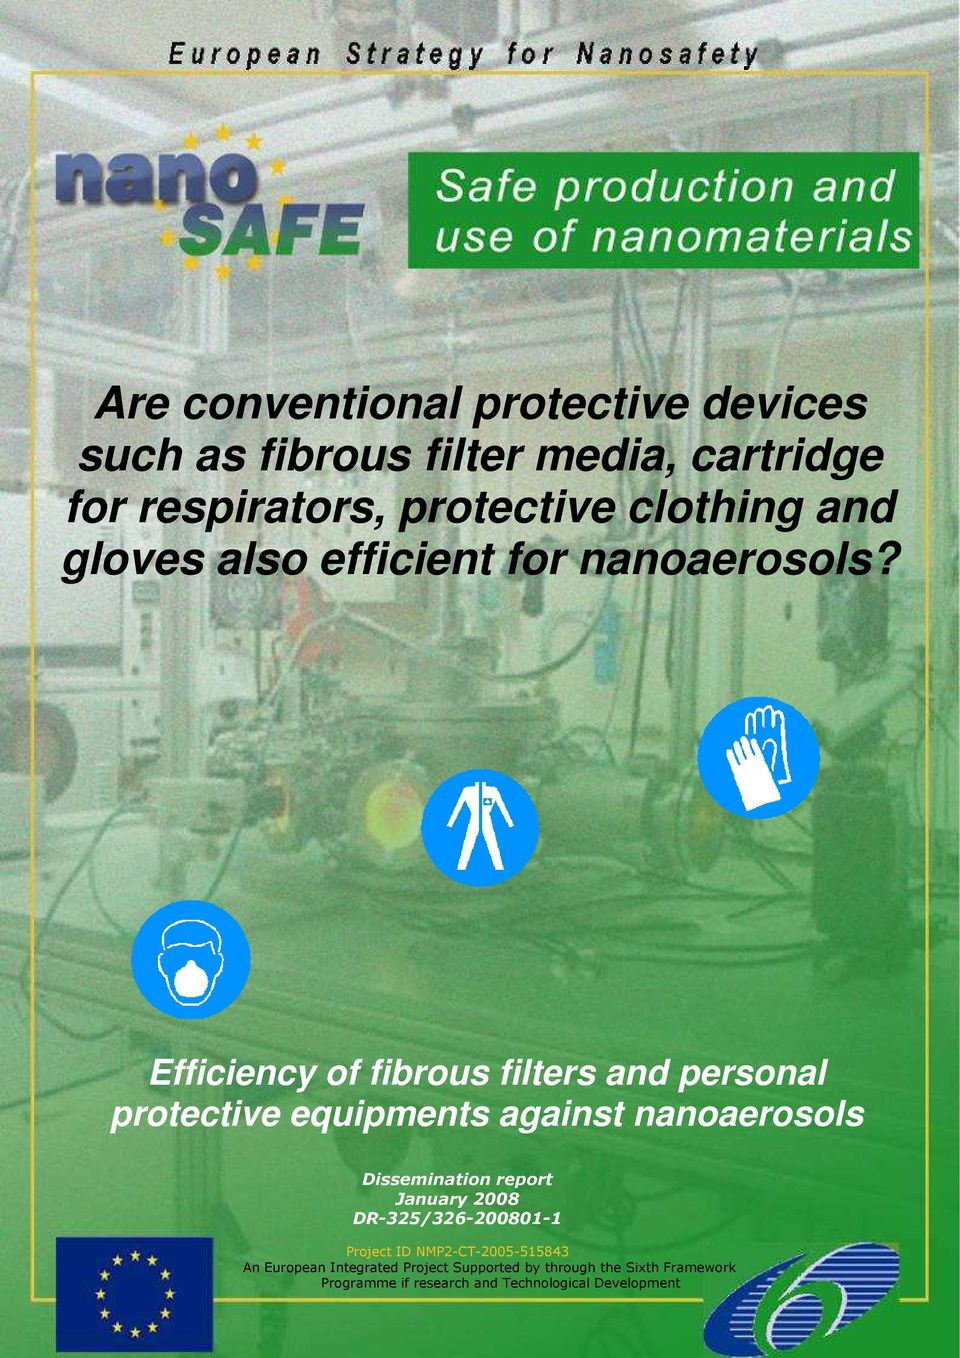 Efficiency of fibrous filters and personal protective equipments against nanoaerosols Dissemination report